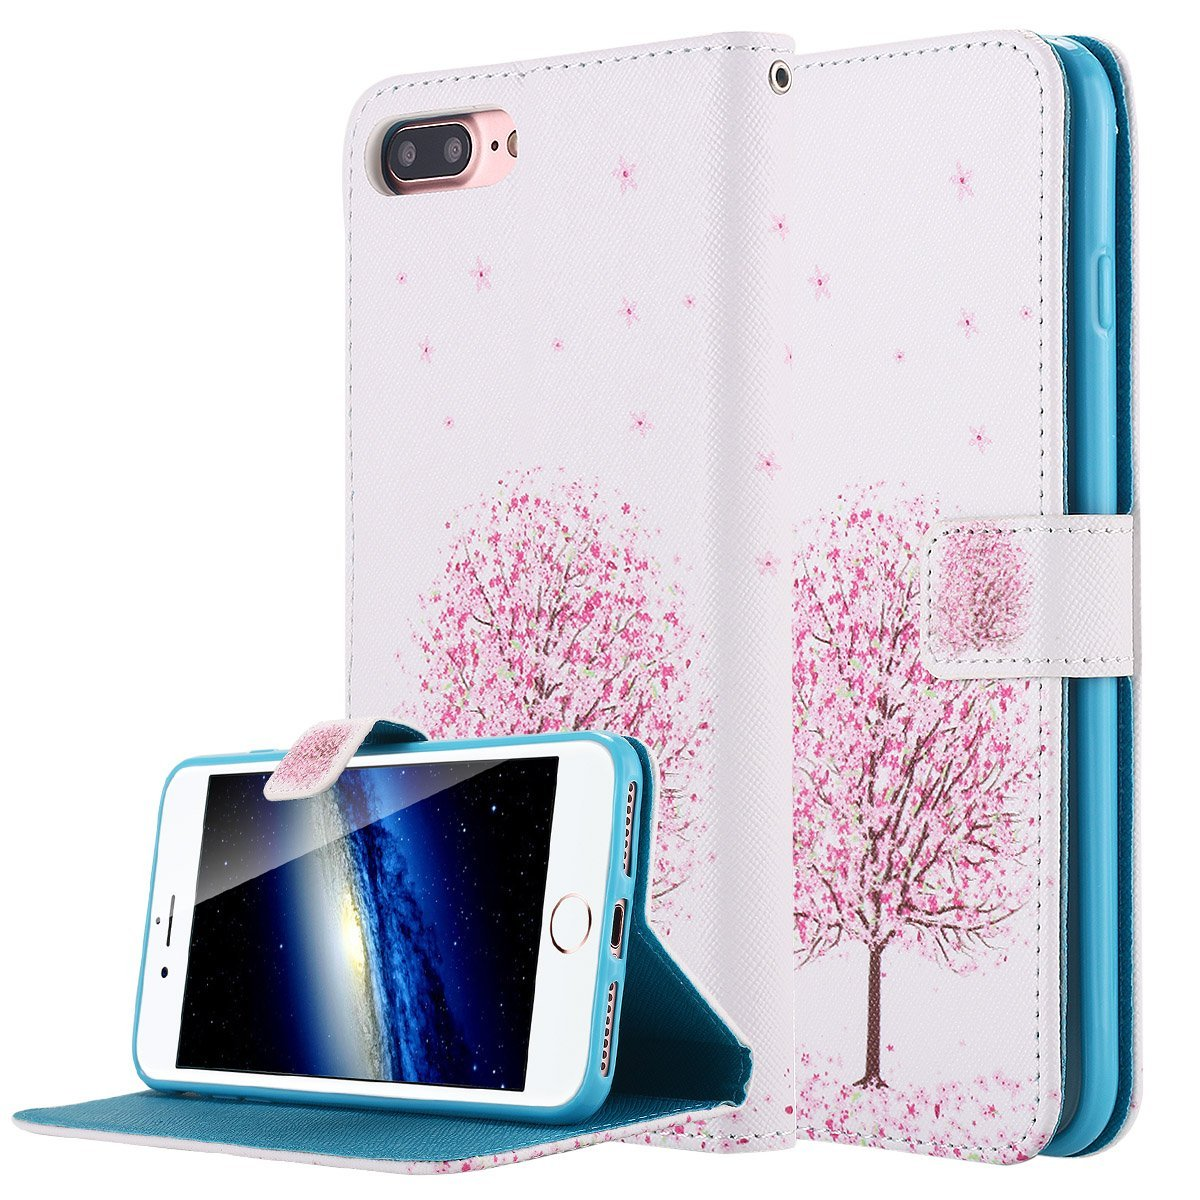 iPhone 7 Plus Case, LONTECT Unique Pattern PU Leather Stand Flip Wallet Case Cover with Card Slot Holder for Apple iPhone 7 Plus - Sukura